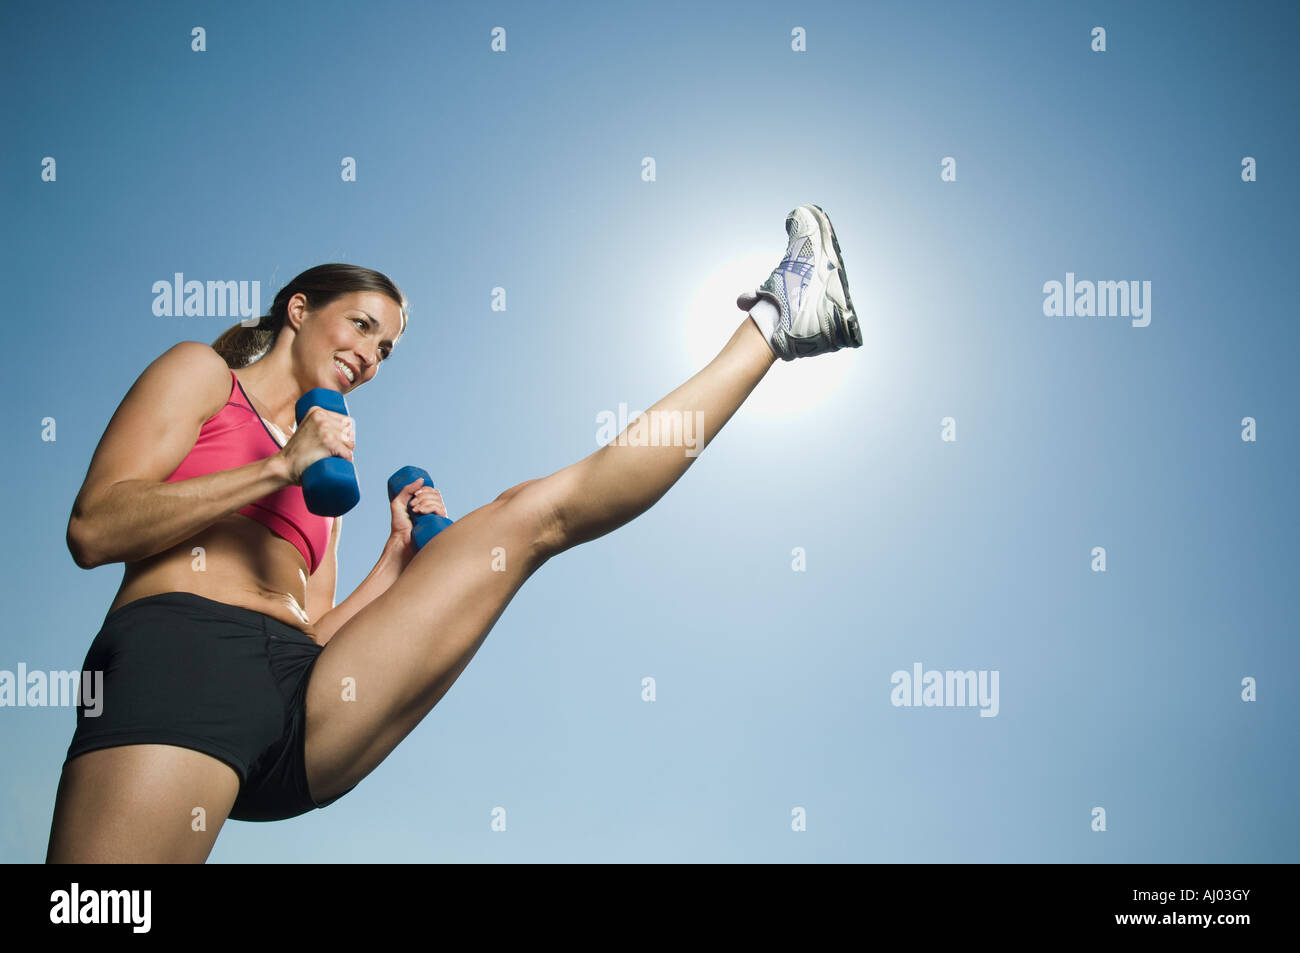 Woman in athletic gear kicking - Stock Image